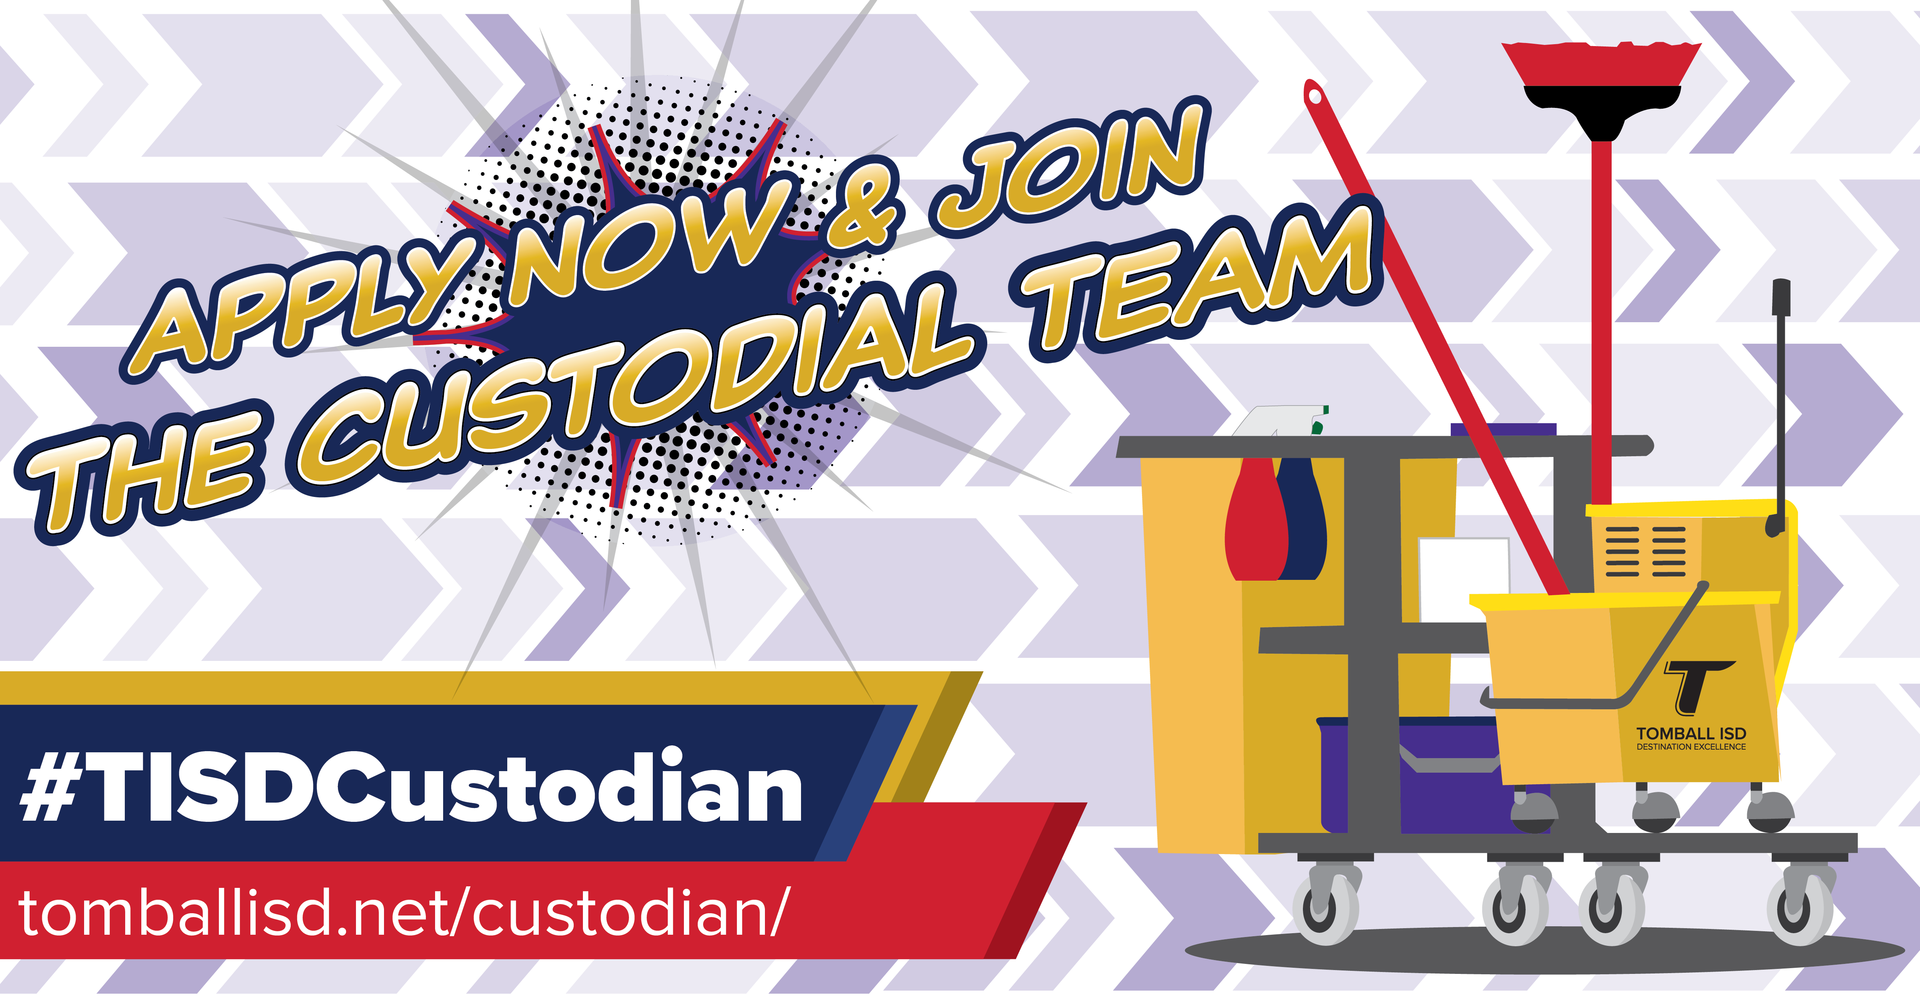 Apply now and join the custodial team